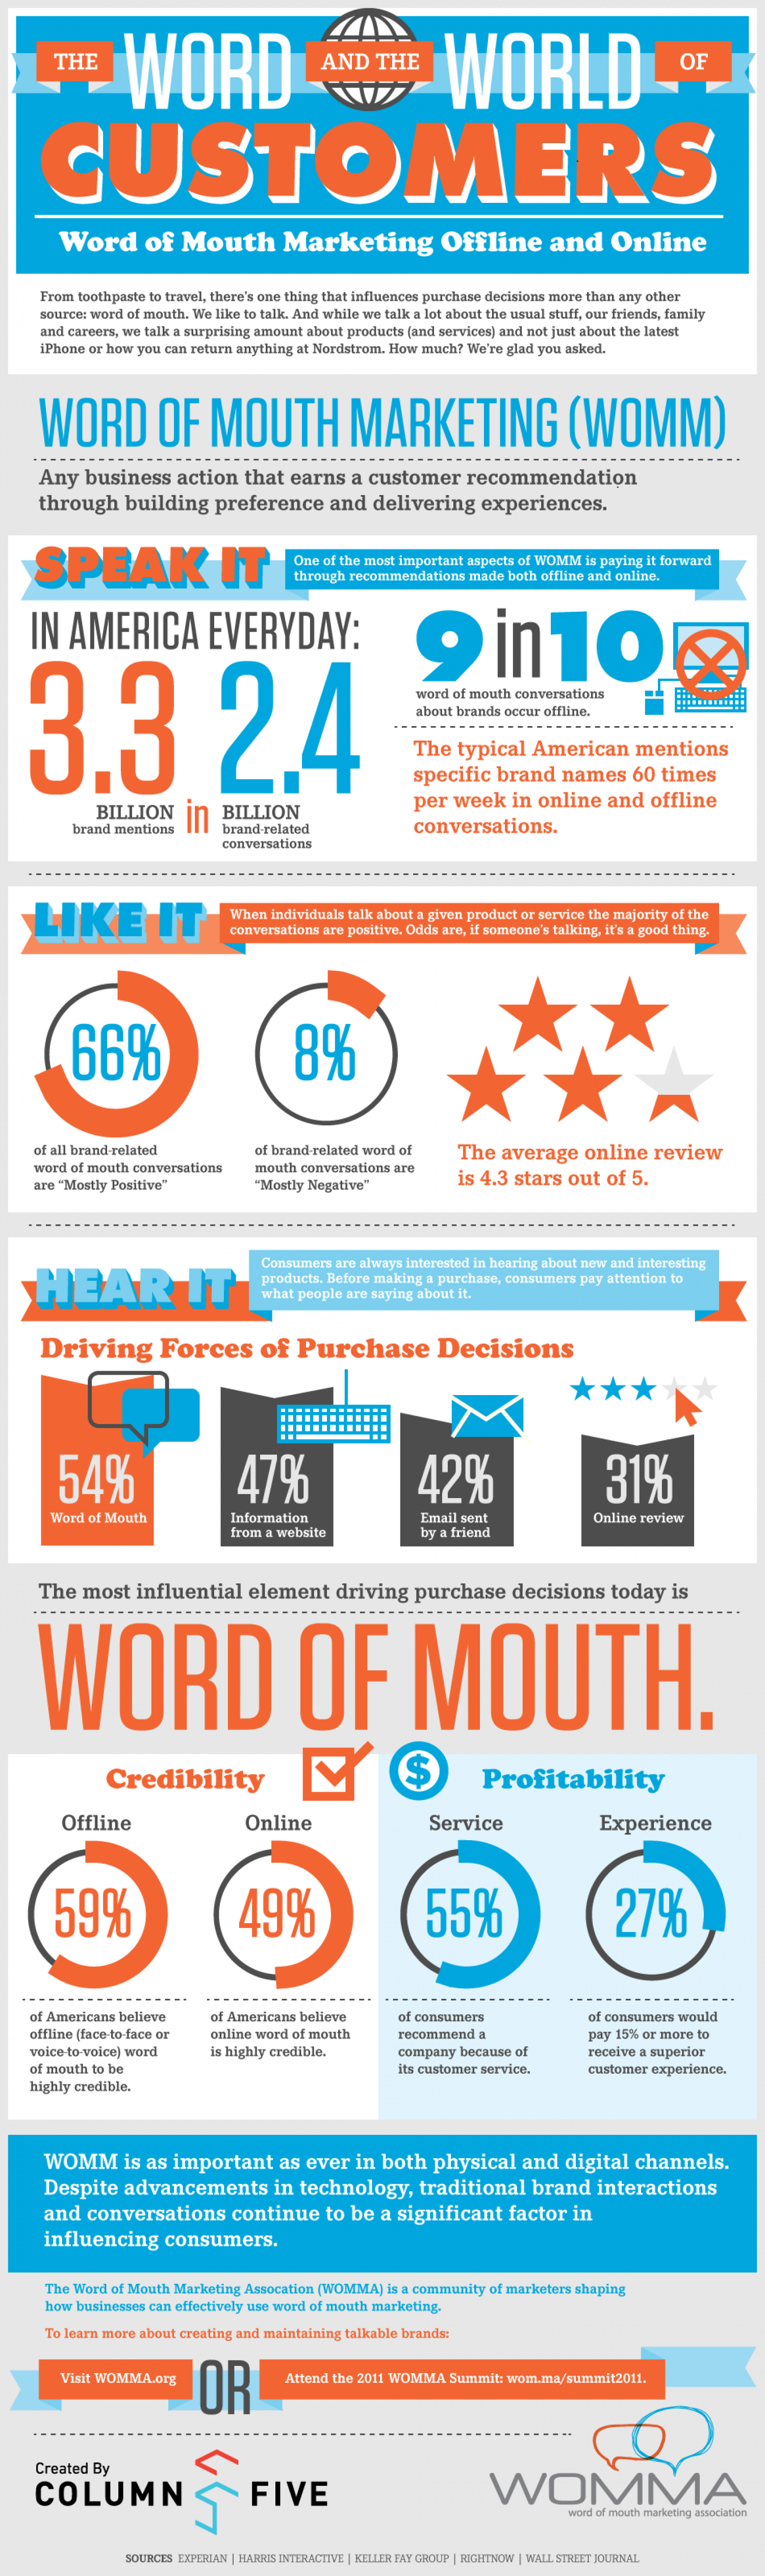 The Word and the World of Customers Infographic